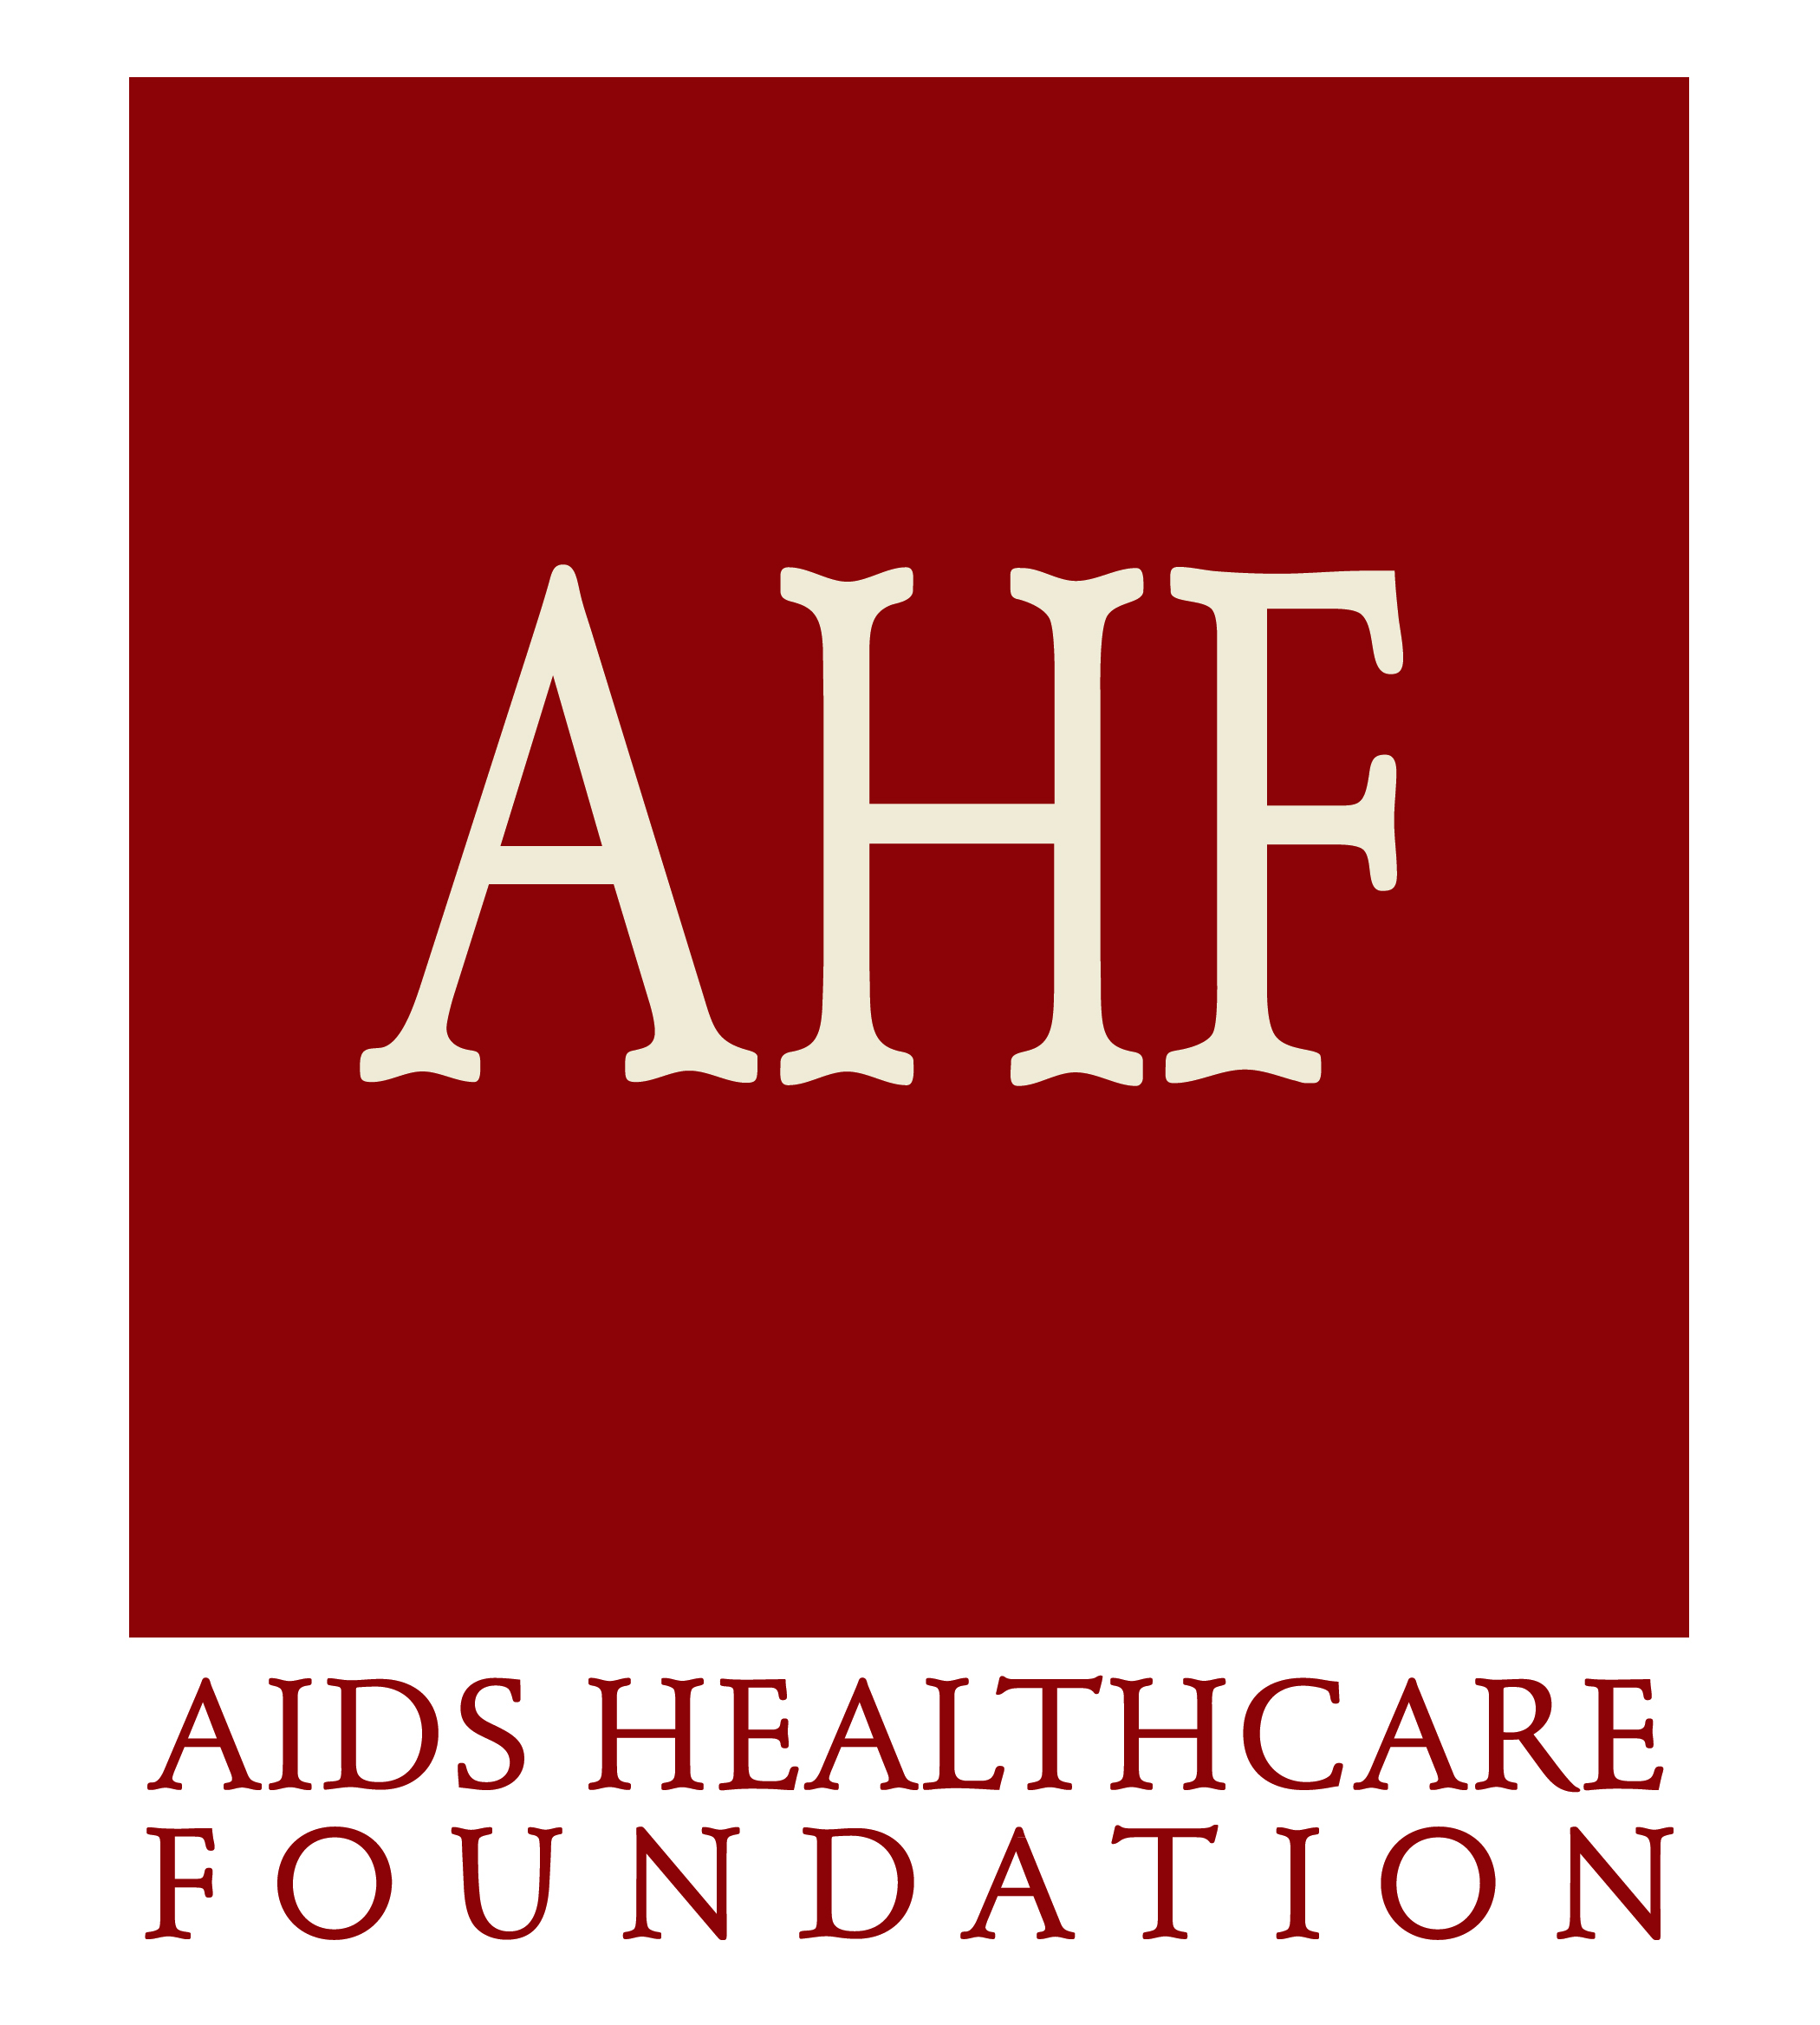 AIDS Healthcare Foundation Spring/Summer 2014